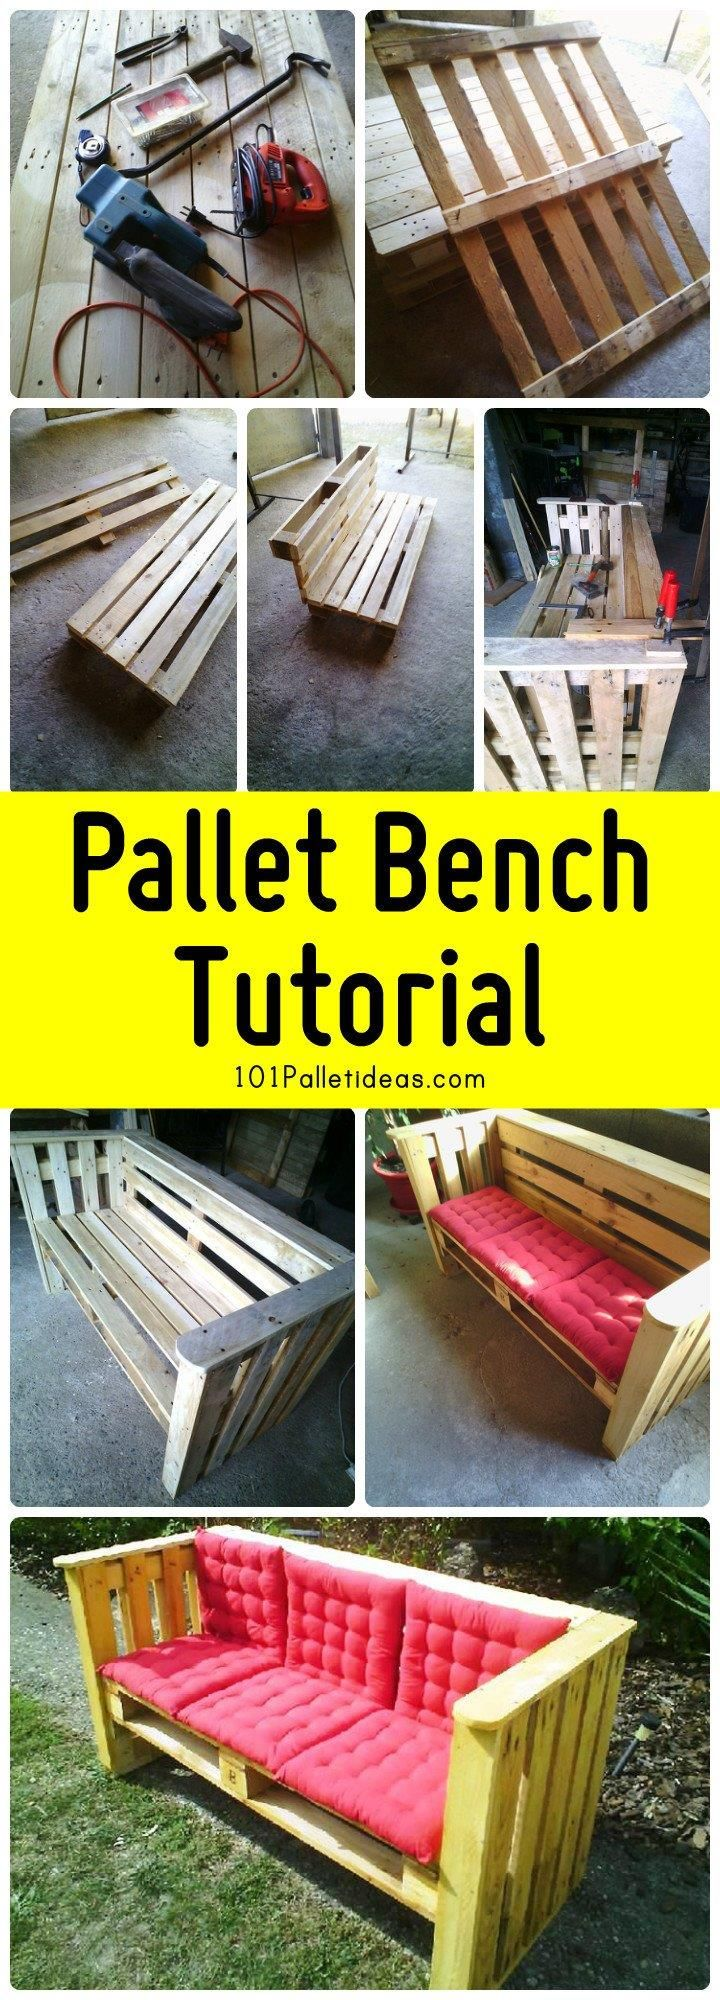 Diy comfortable pallet adirondack chair 101 pallets - 1119 Best Pallet Benches Chairs Stools Images On Pinterest Pallet Ideas Pallet Projects And 1001 Pallets